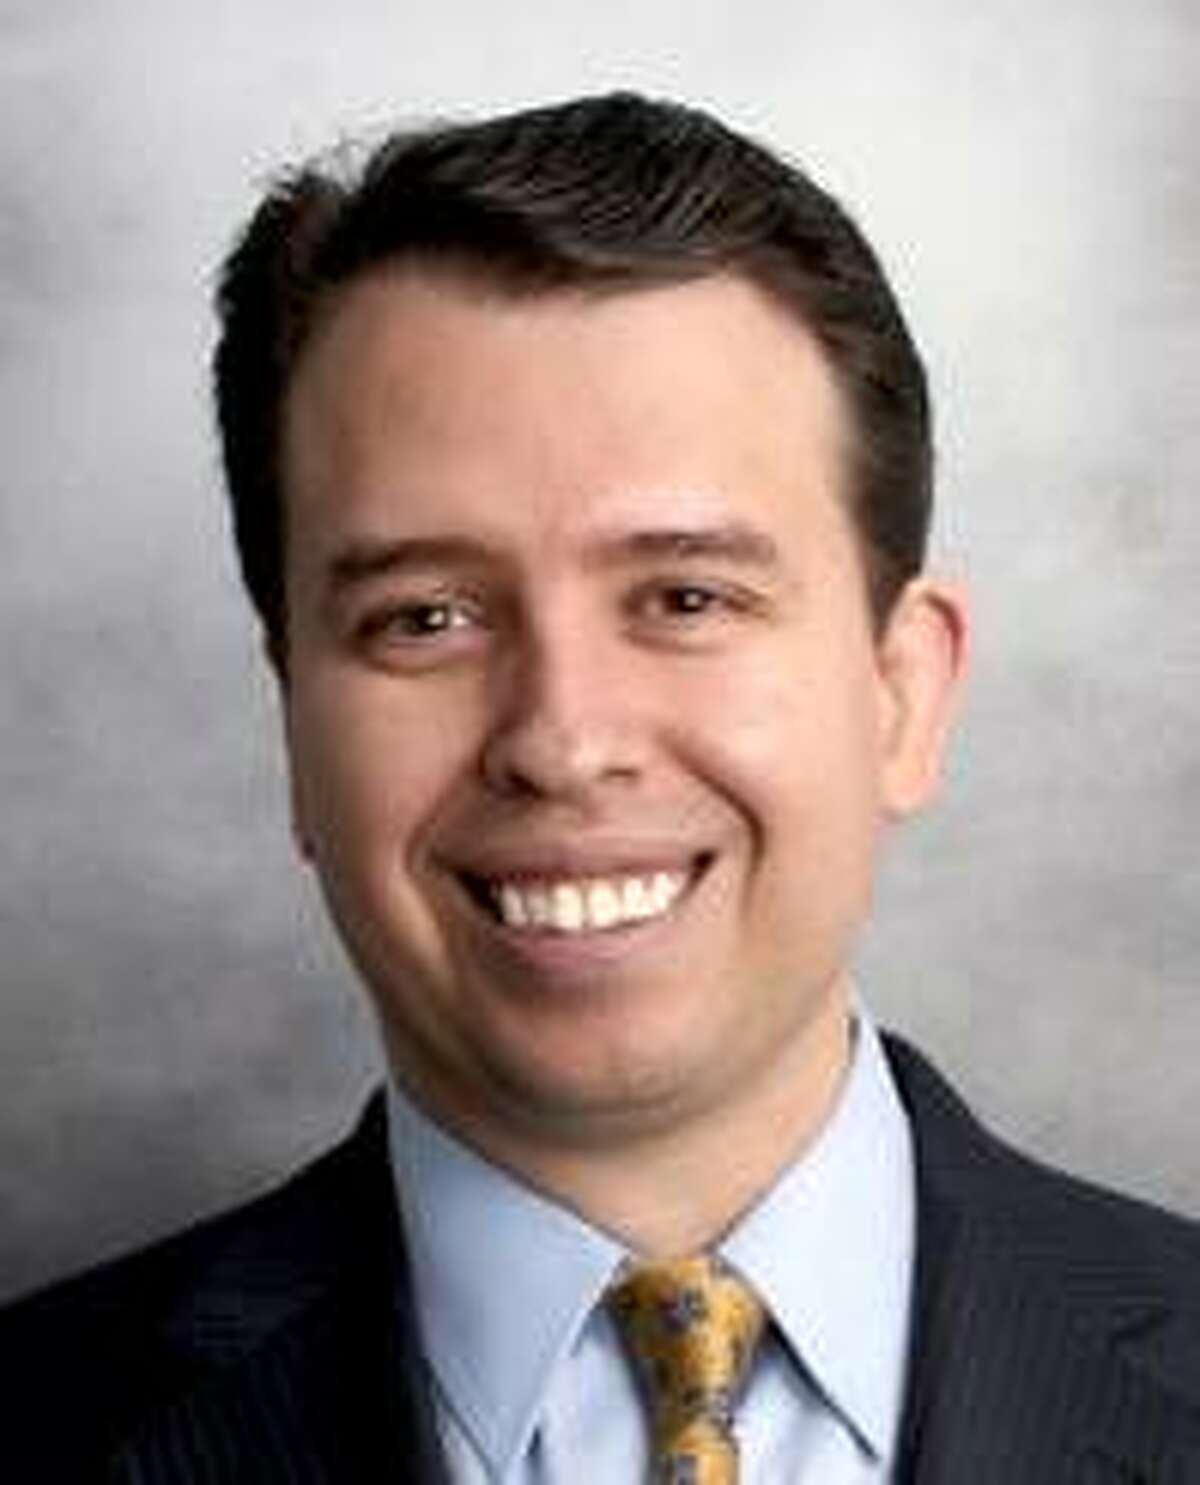 The San Antonio Independent School District Board of Trustees on May 4, 2015, voted unanimously to hire Pedro Martinez, now living in Reno, as its next superintendent.